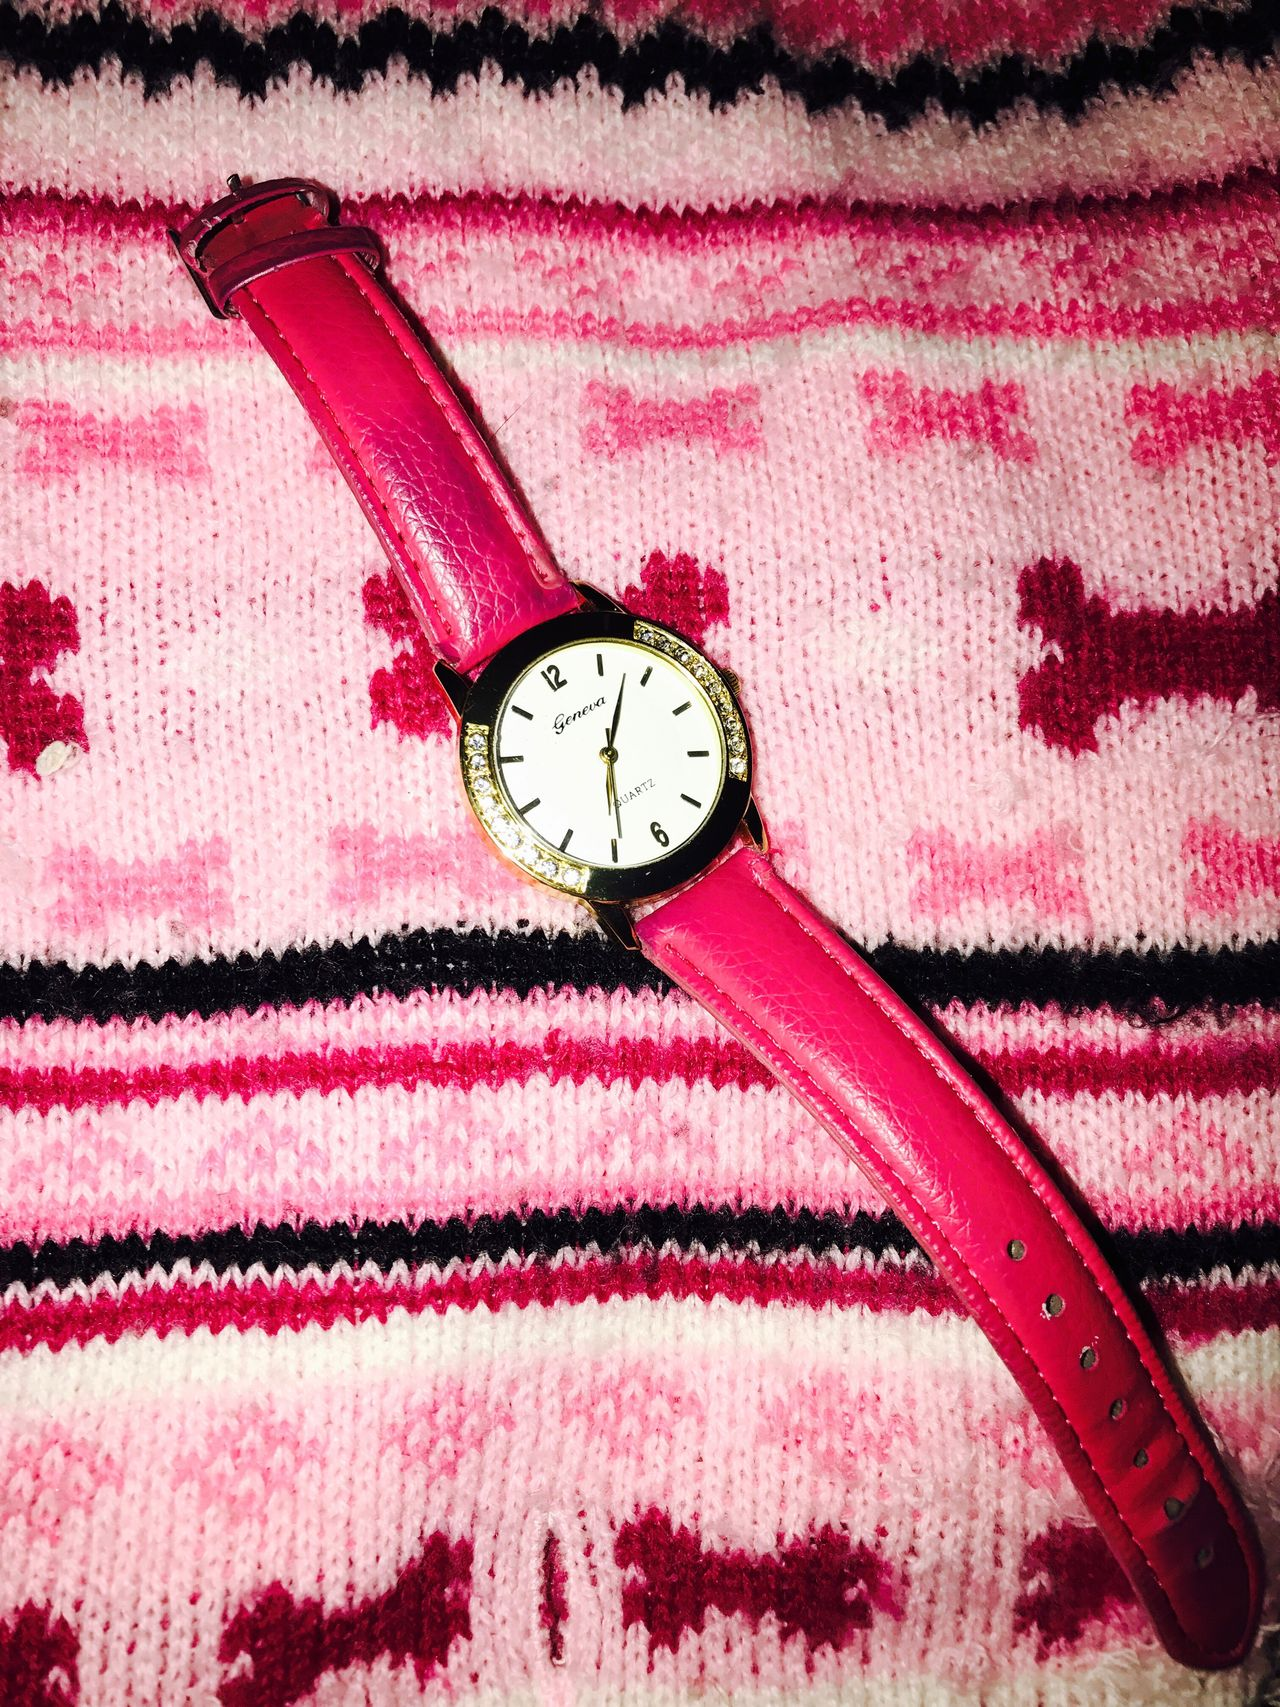 Millennial Pink Watch Pink Sweater Bright Colors Colors Time